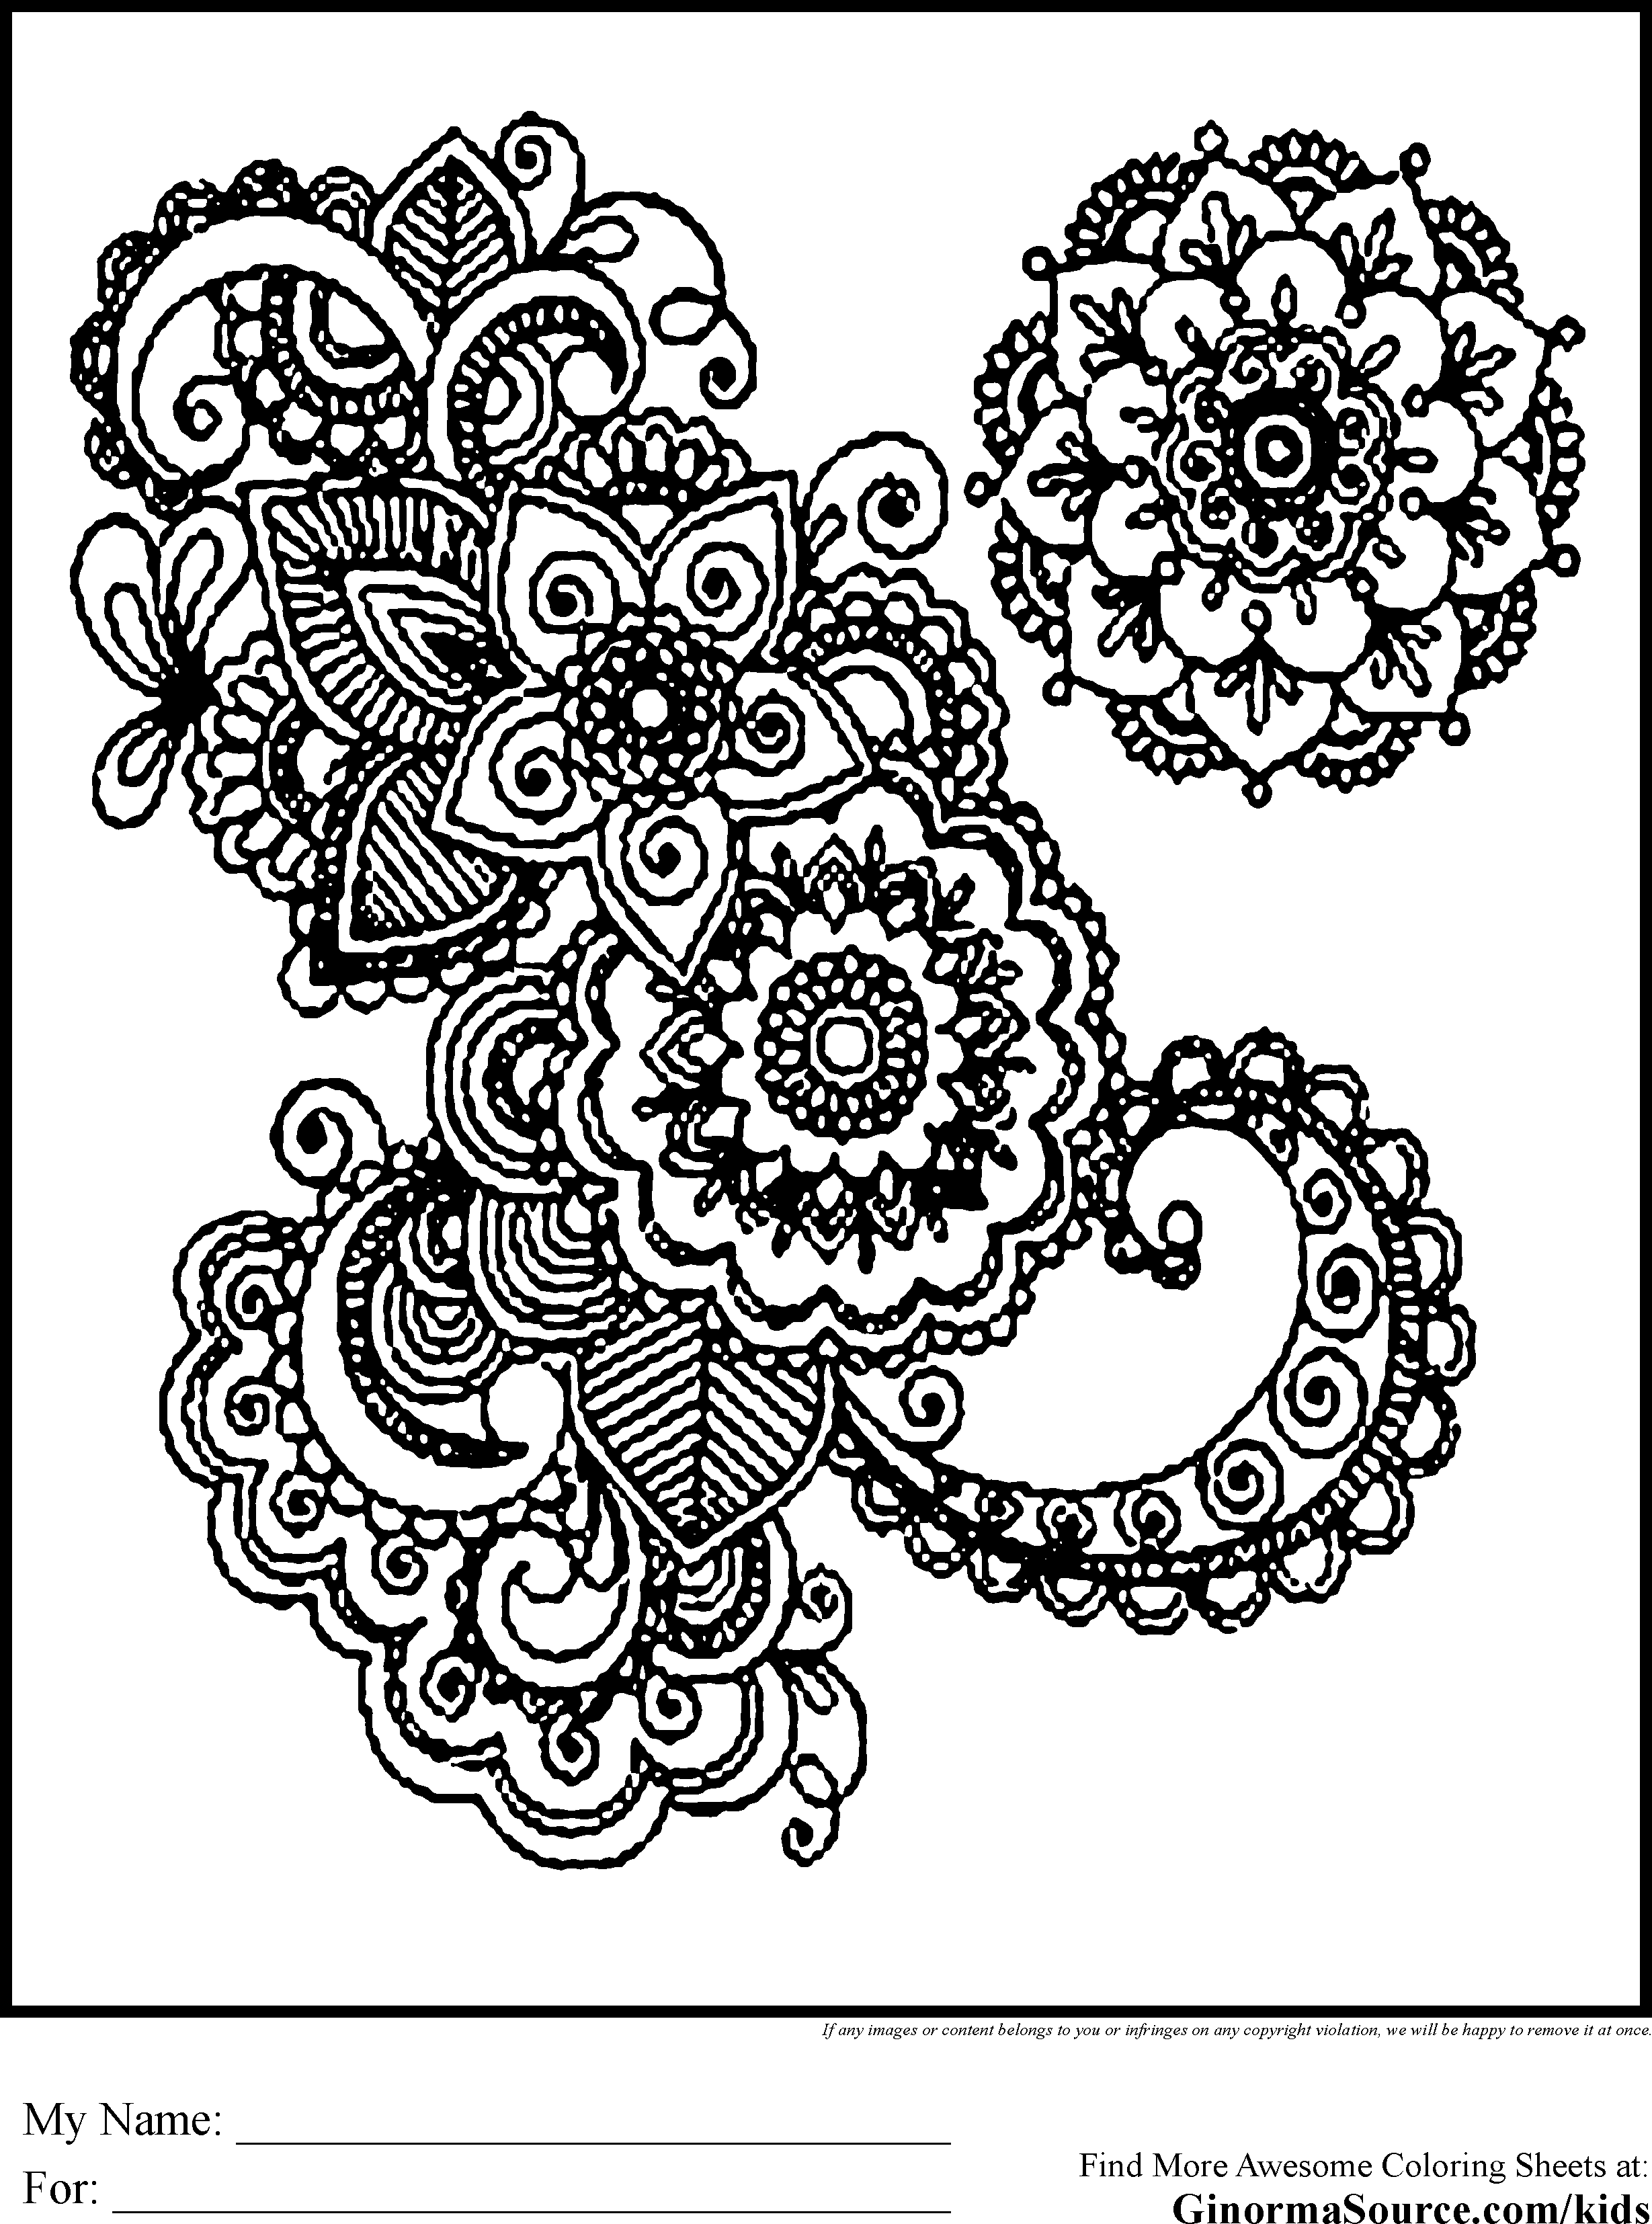 Advanced Christmas Coloring Pages To Print : Coloring pages for adults advanced